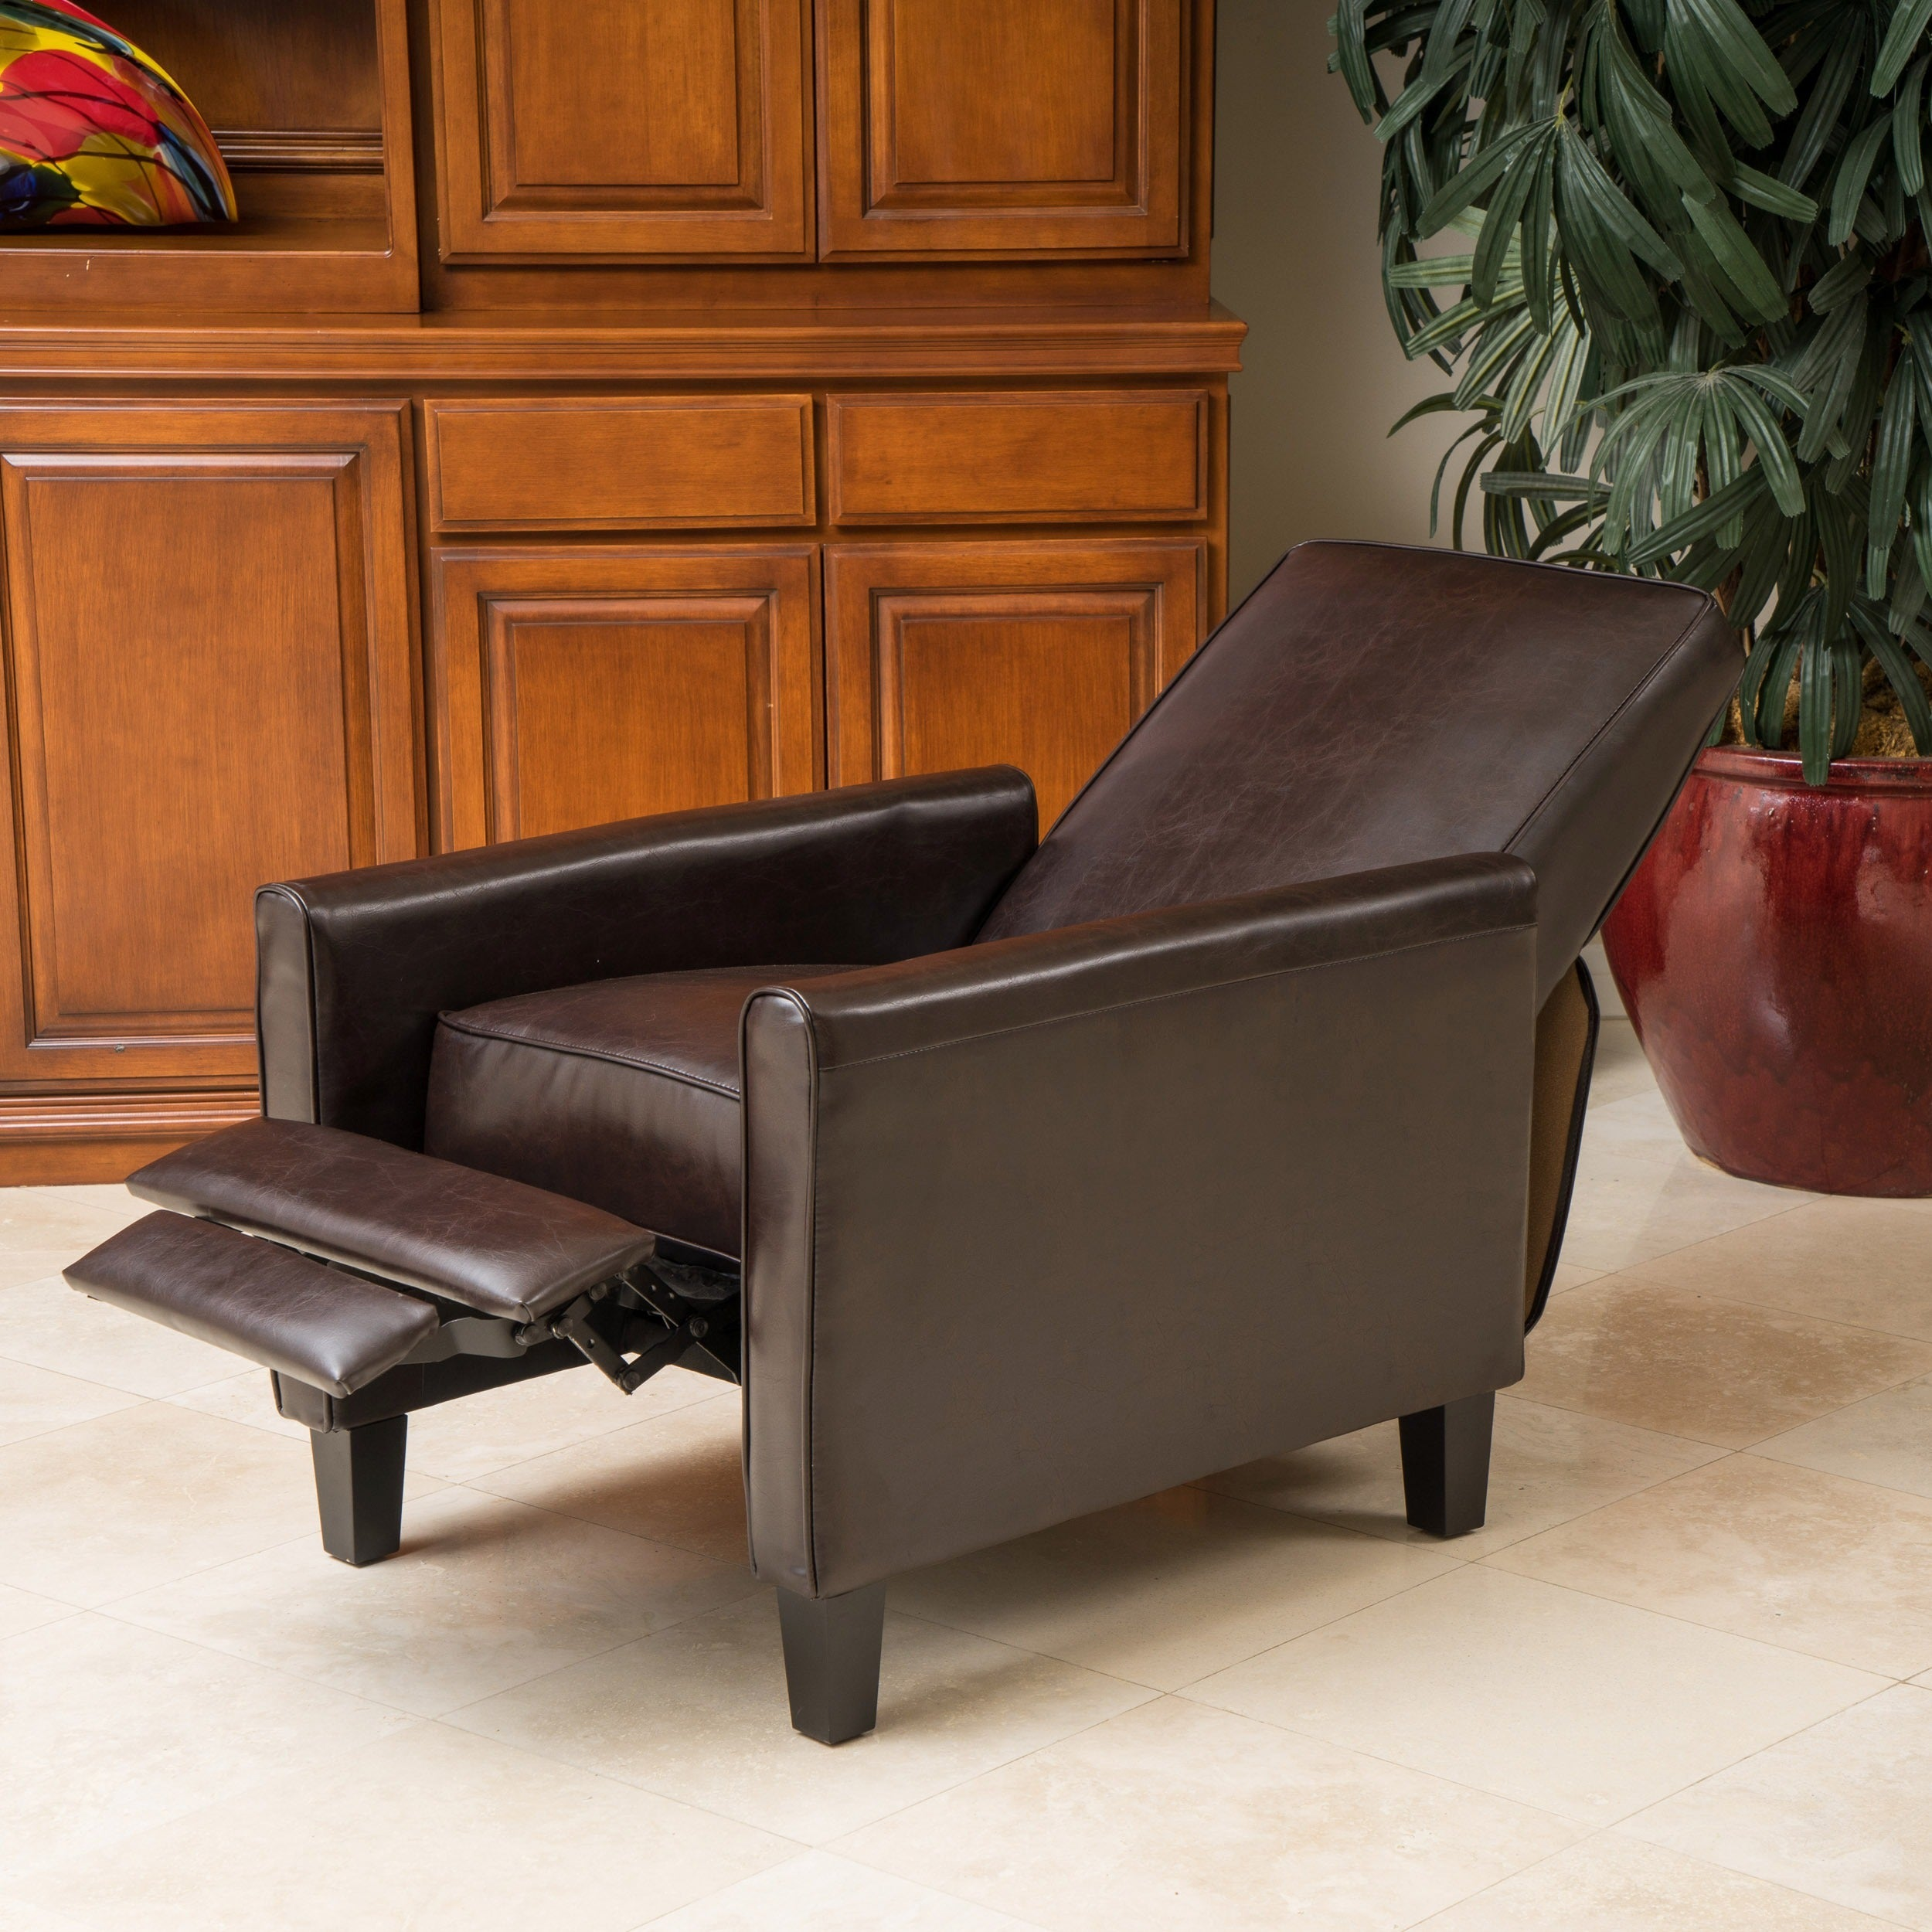 Living Room Recliner Home fice Leather Den fice Club